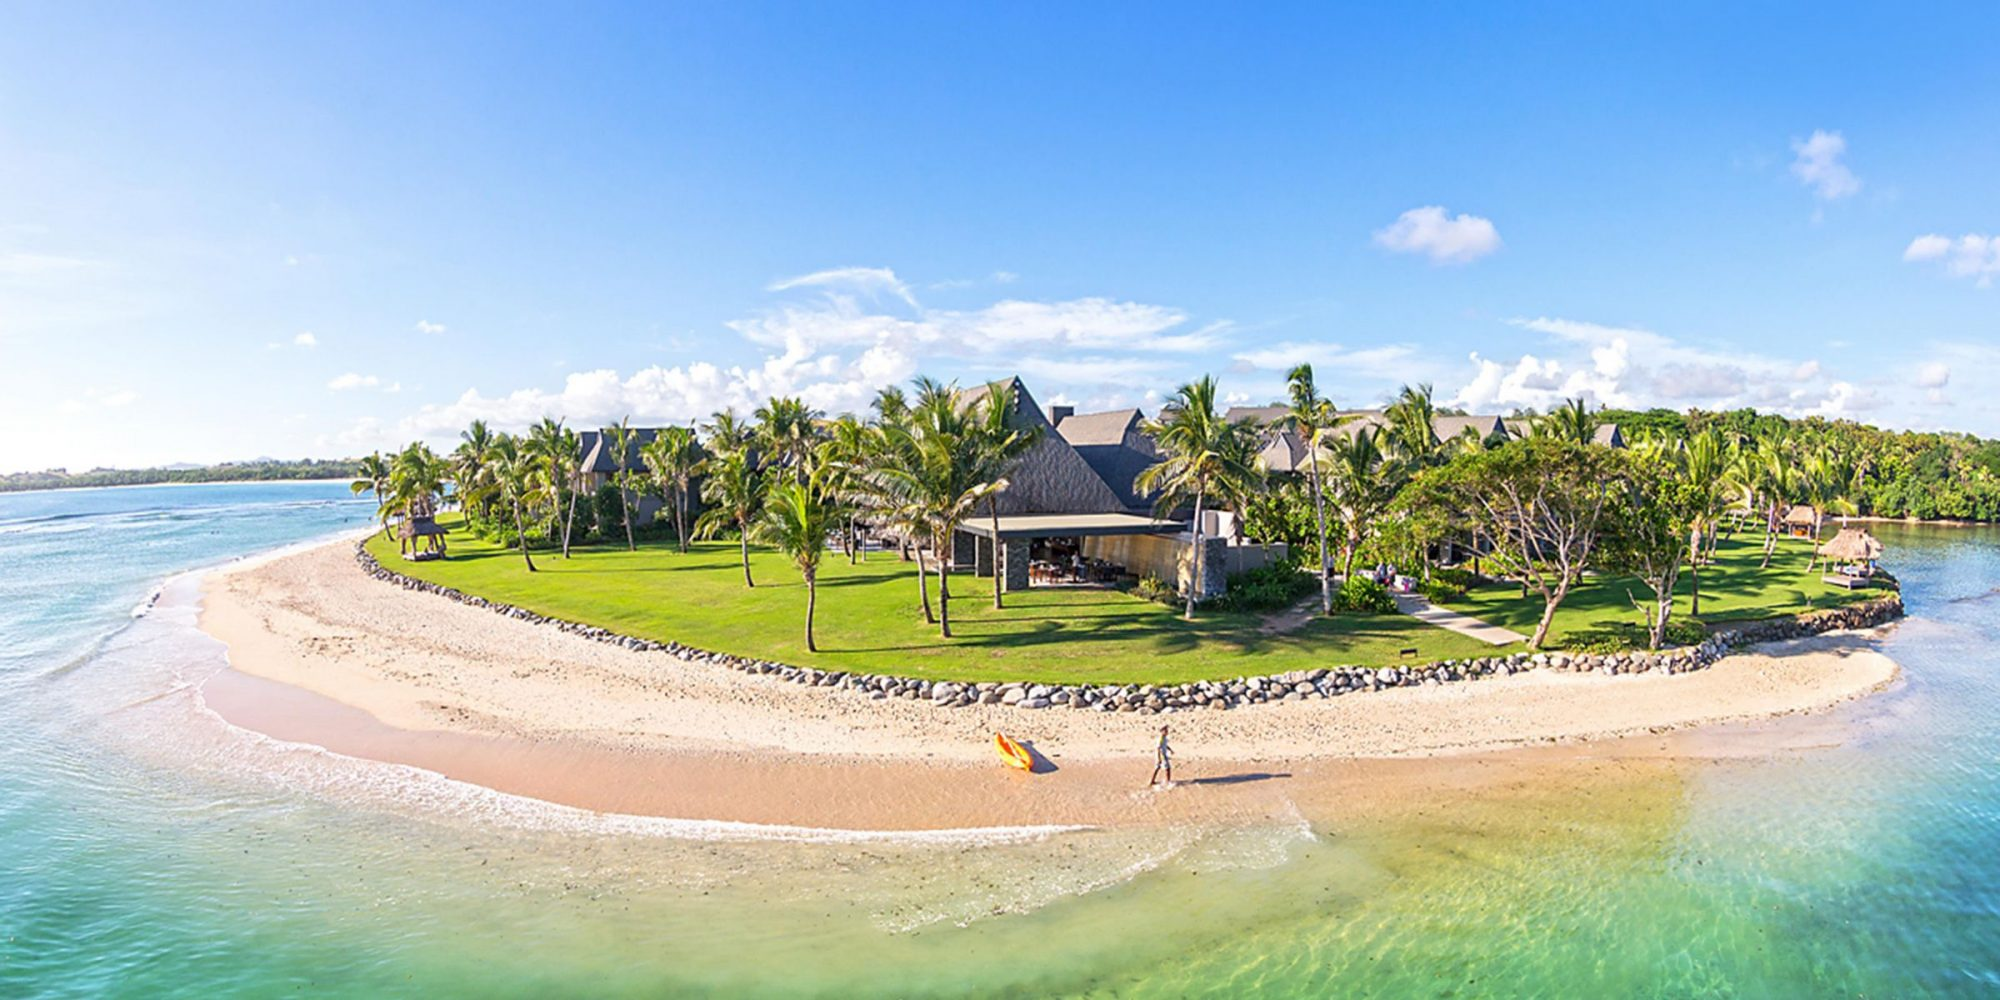 Earn 2 Award Nights at the Beautiful InterContinential Hotel & Golf Resort in Fiji